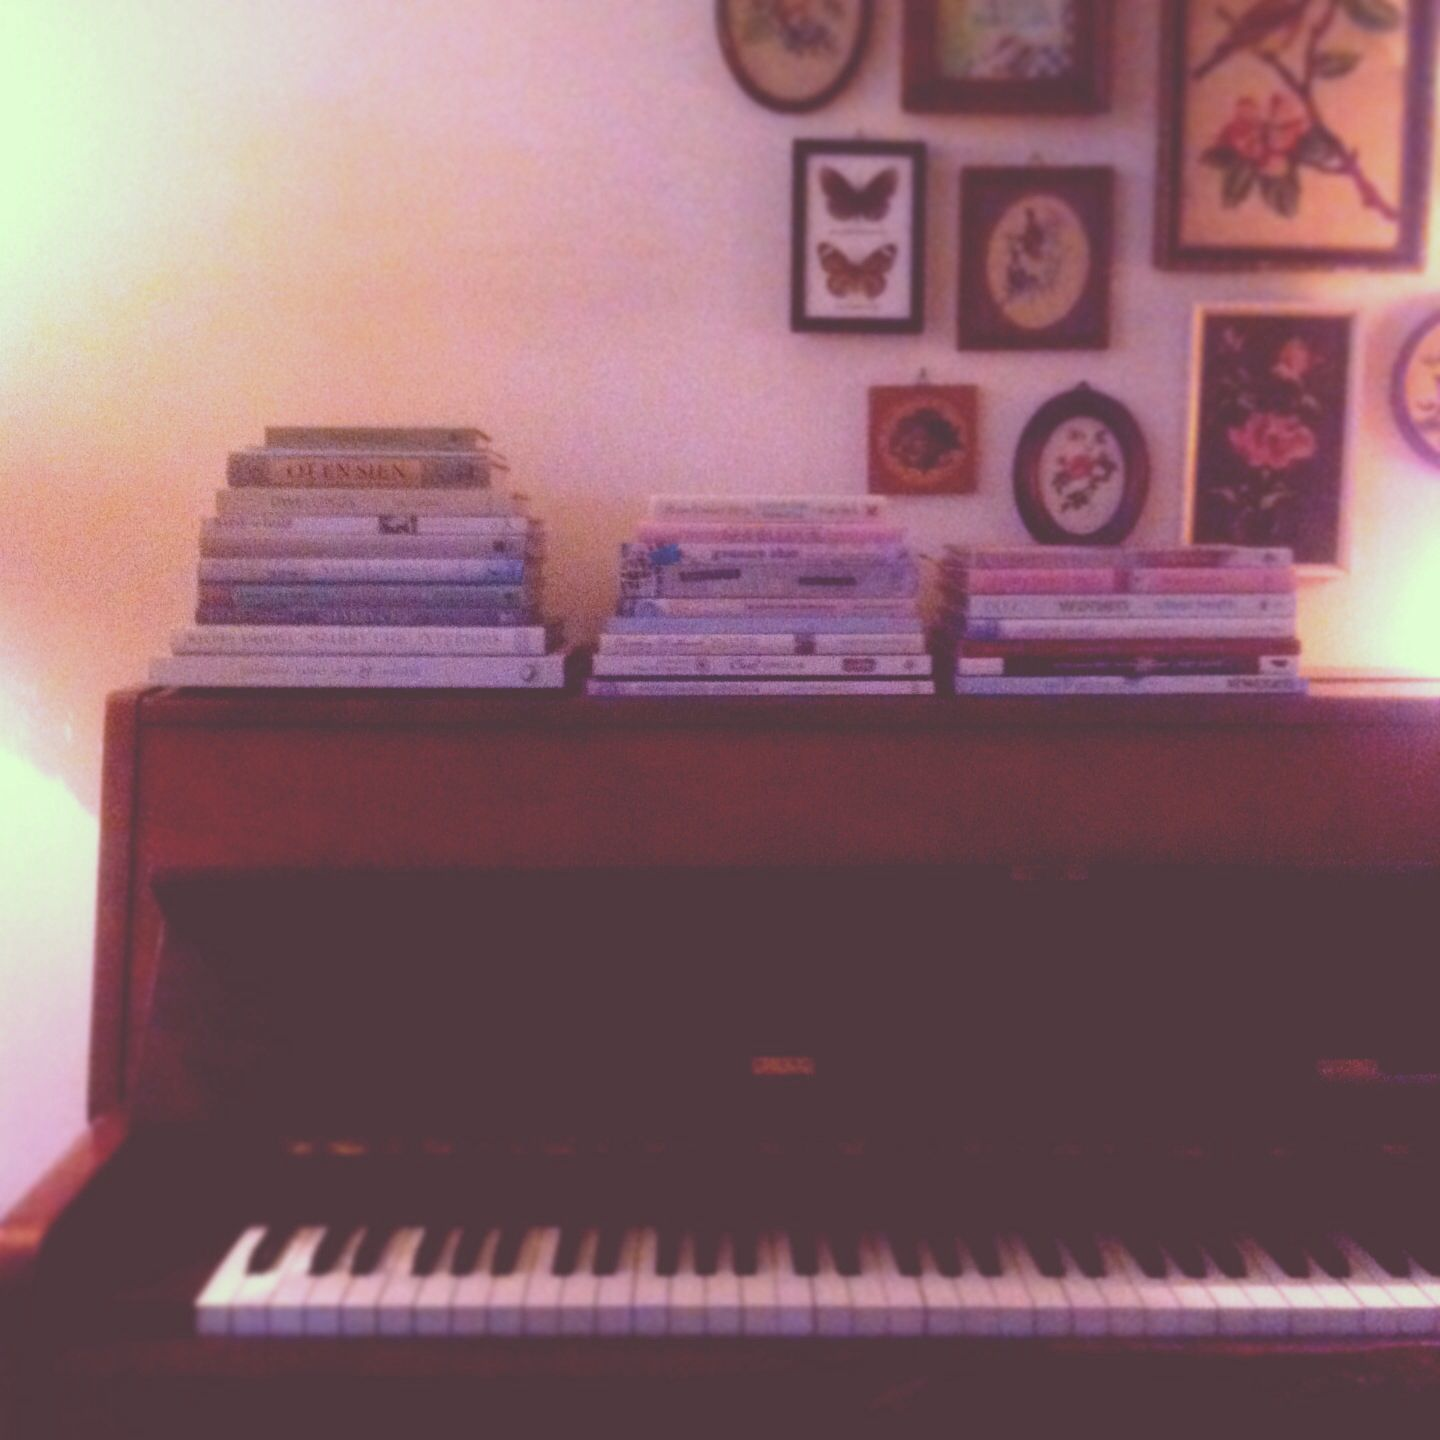 Book storage at the piano :)